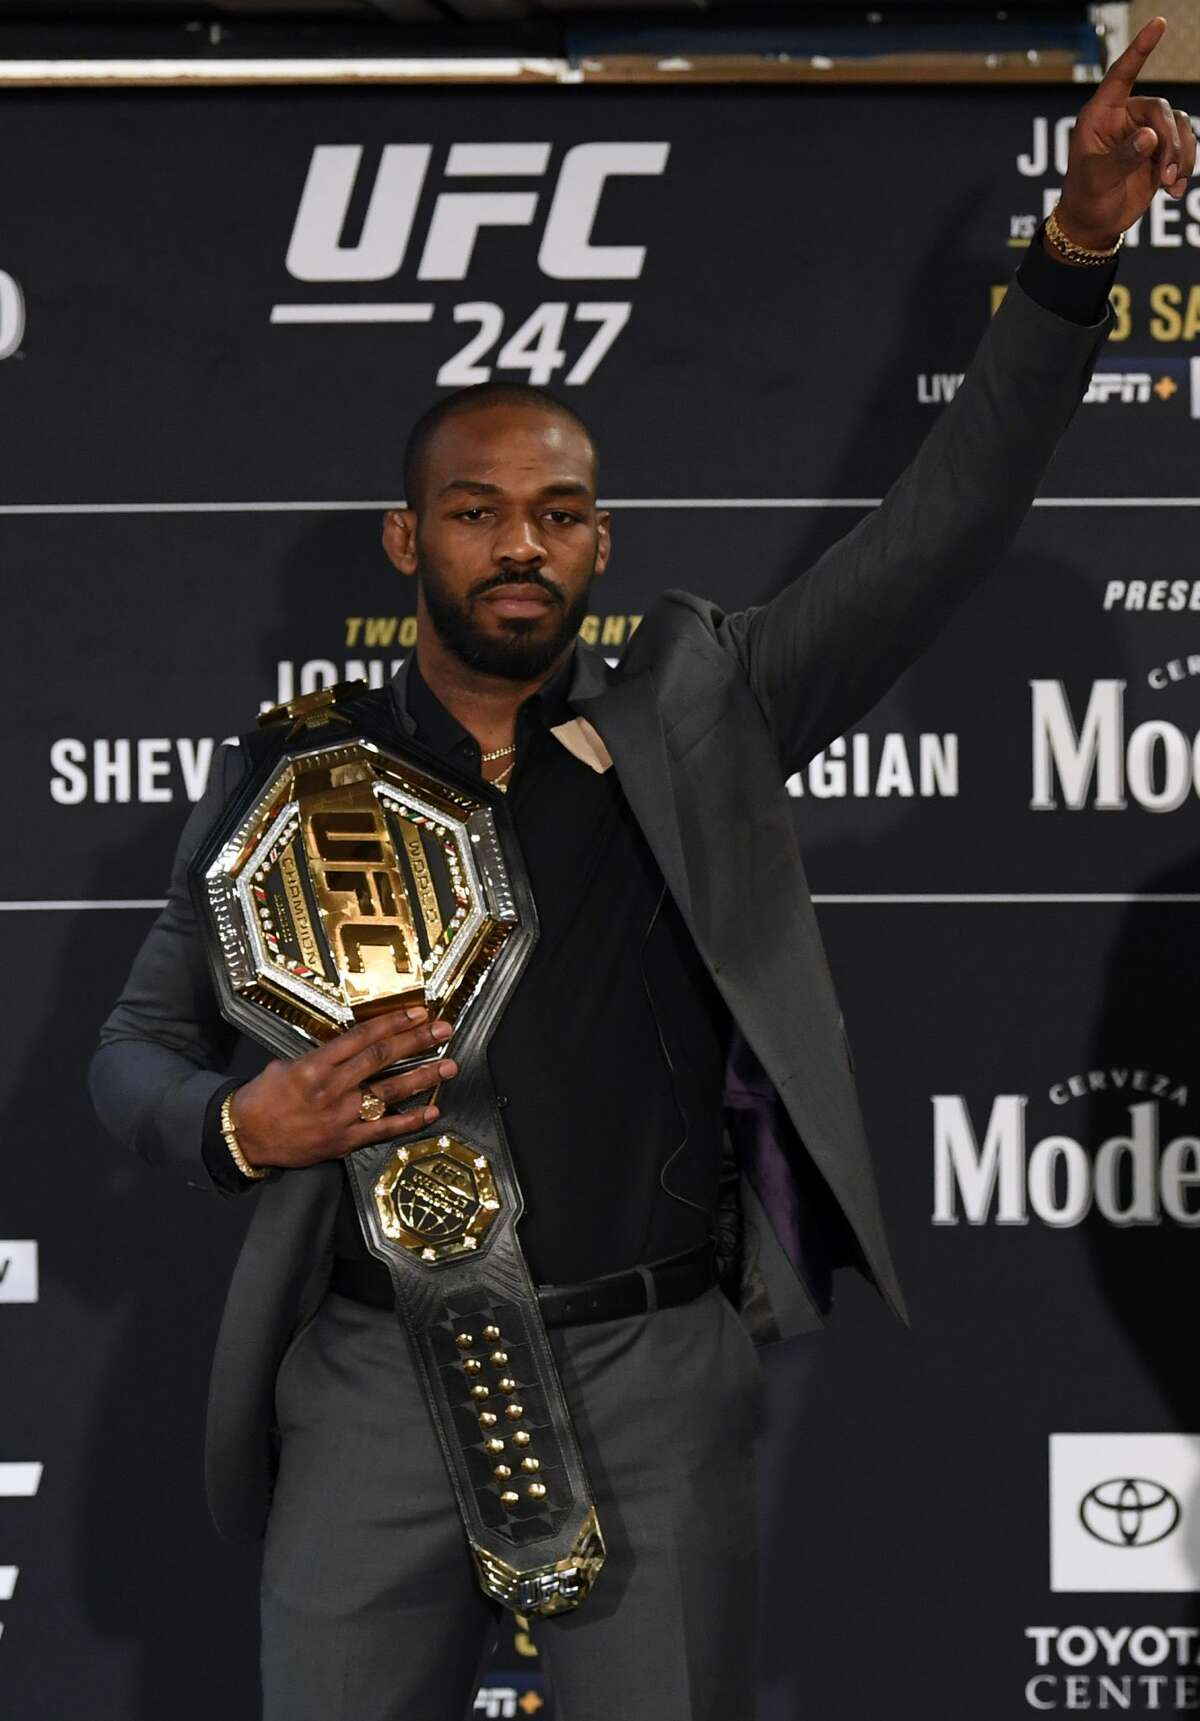 HOUSTON, TEXAS - FEBRUARY 06: Jon Jones poses for photos during the UFC 247 Ultimate Media Day at the Crowne Plaza Houston River Oaks on February 06, 2020 in Houston, Texas. (Photo by Josh Hedges/Zuffa LLC)